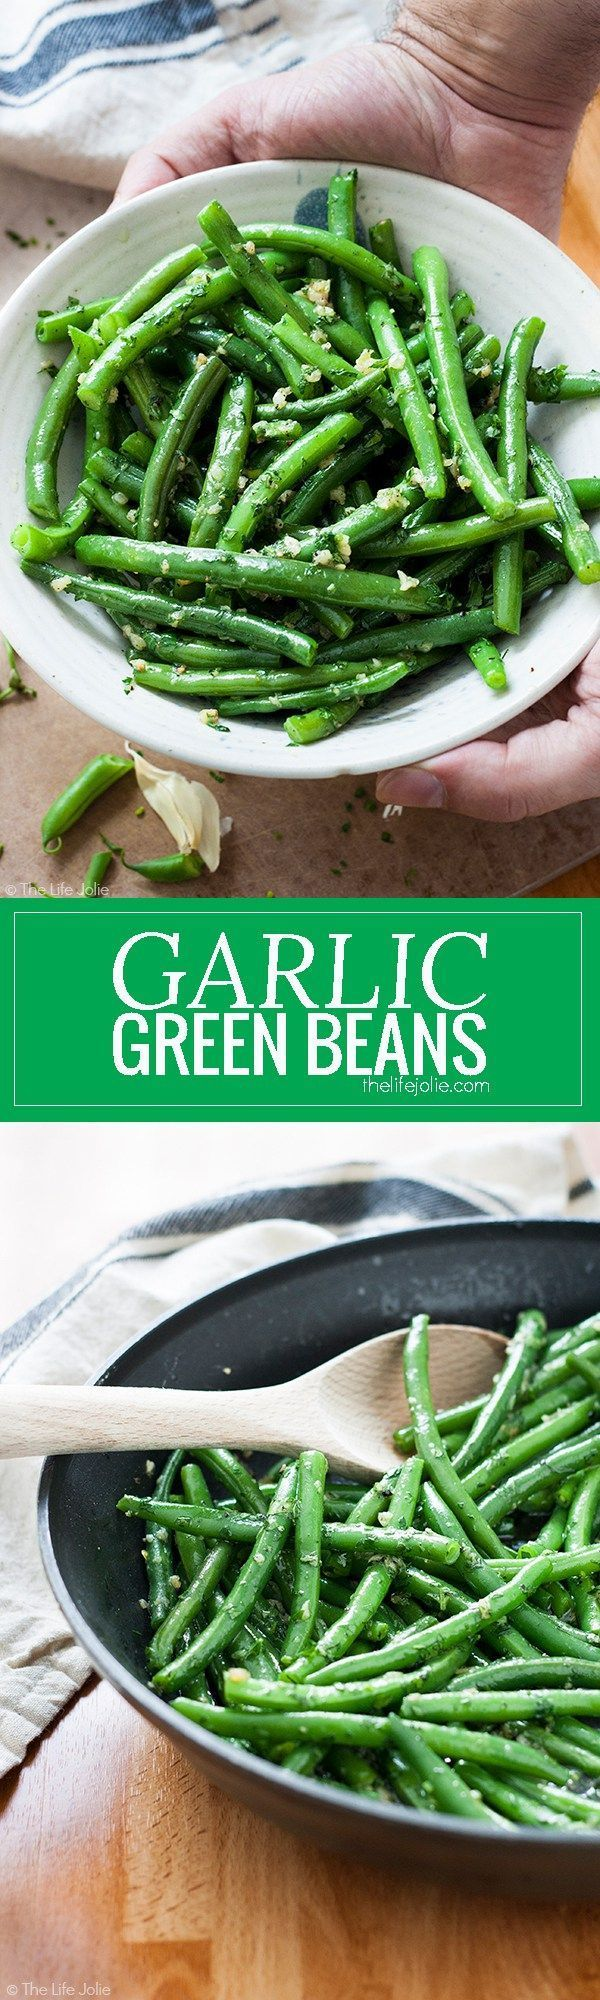 Garlic Green Beans is one of my favorite side dish recipes! It's easy to make and pretty healthy with Crispy Green Beans sauteed in a skillet. Fresh parley adds a great, herbaceous brightness with a little bit of butter and garlic. This is special enough